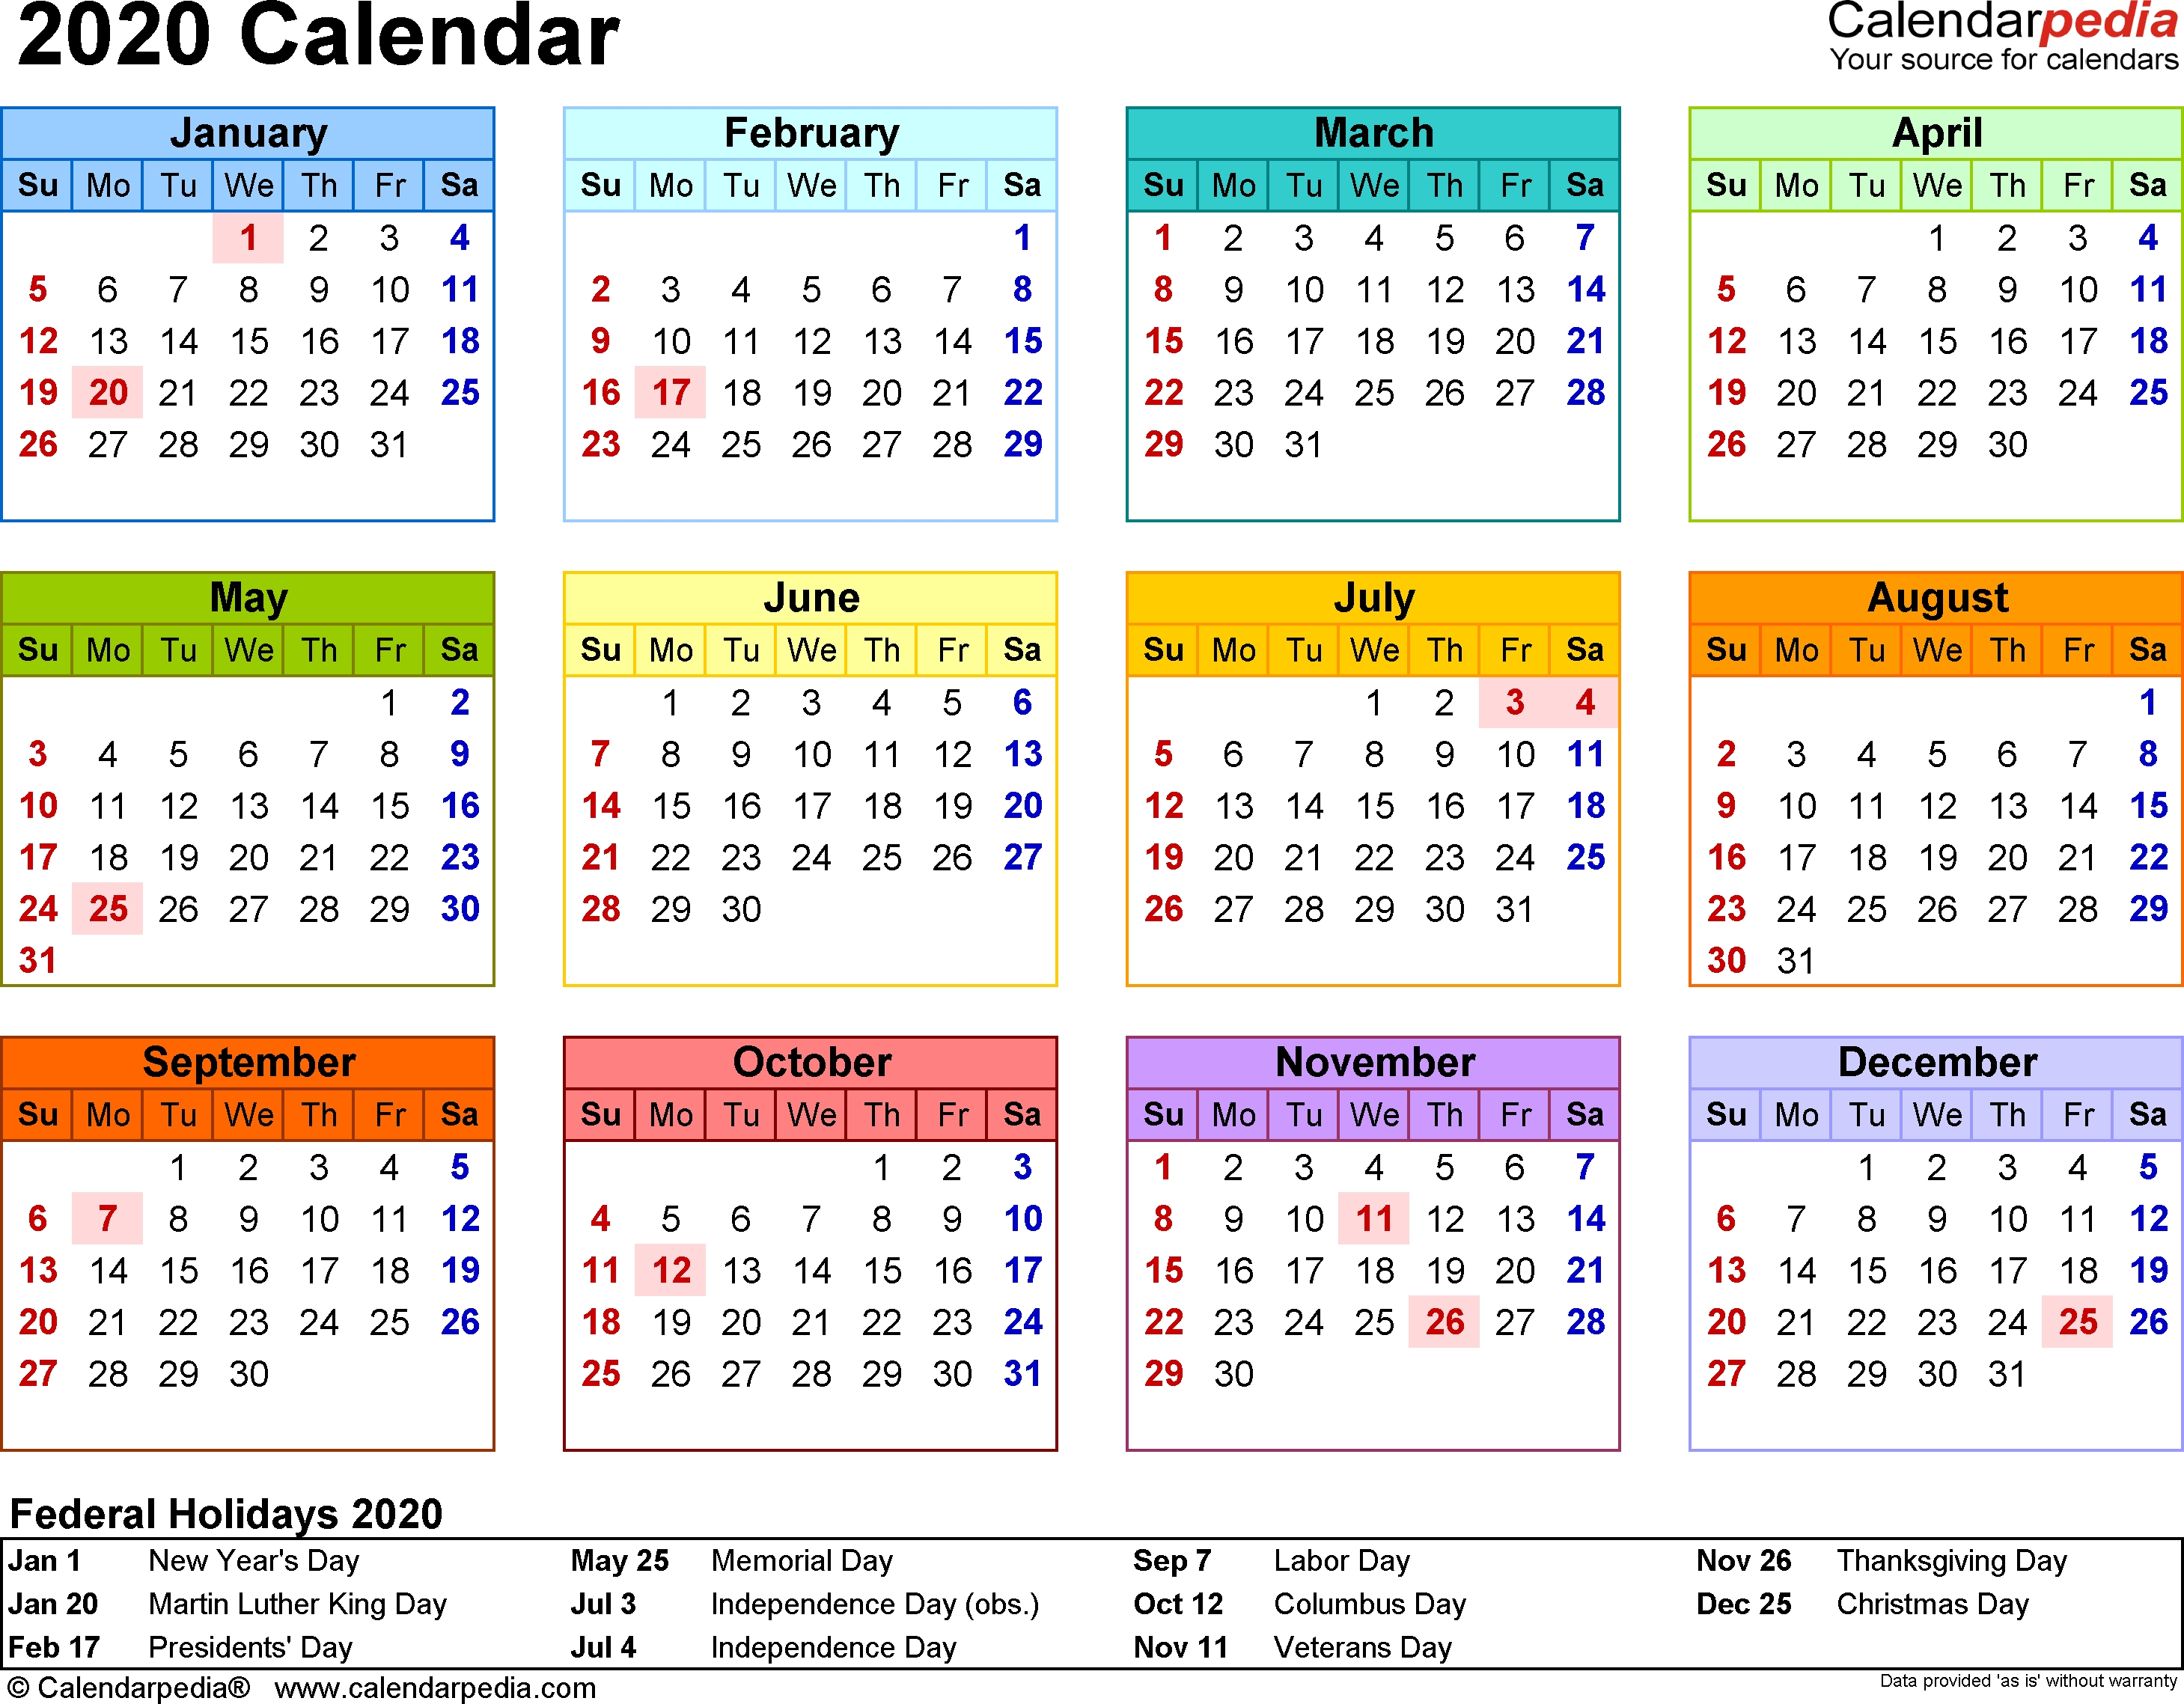 2020 Calendar Pdf - 17 Free Printable Calendar Templates Free Printable 2020 Yearly Calendar With Holidays